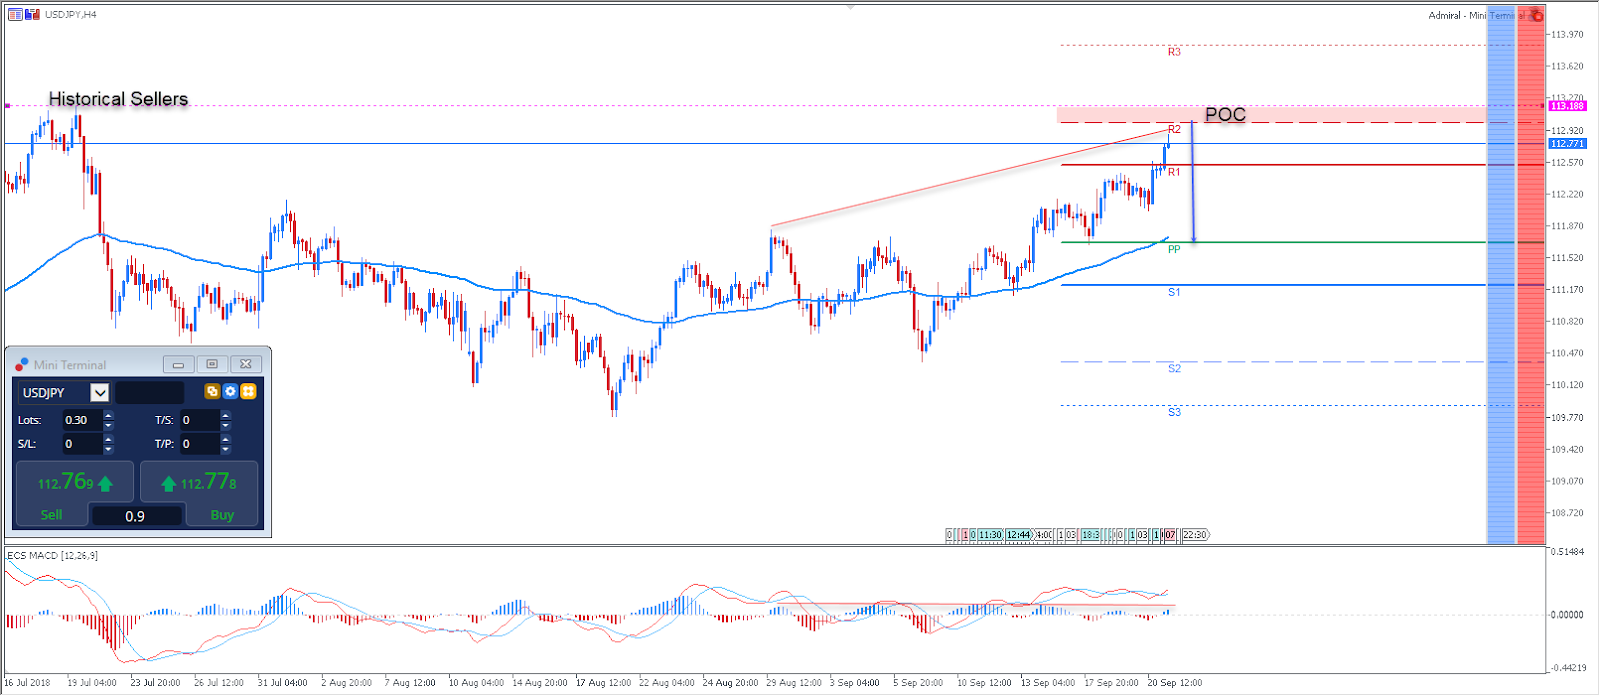 USDJPY Technical Analysis